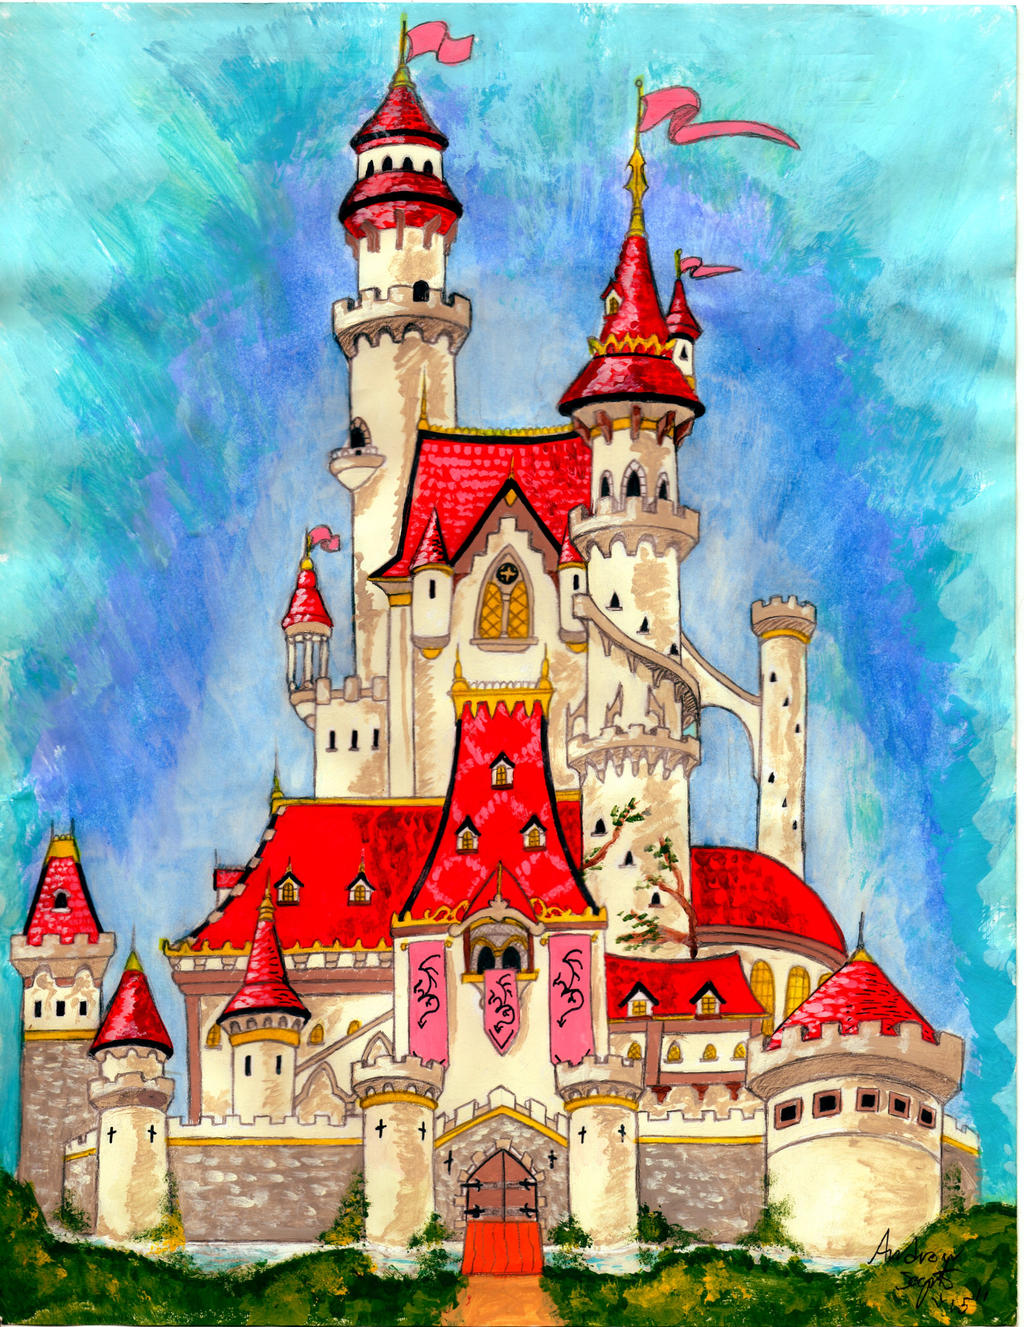 fairy tale castle designsoysaurus1 on deviantart